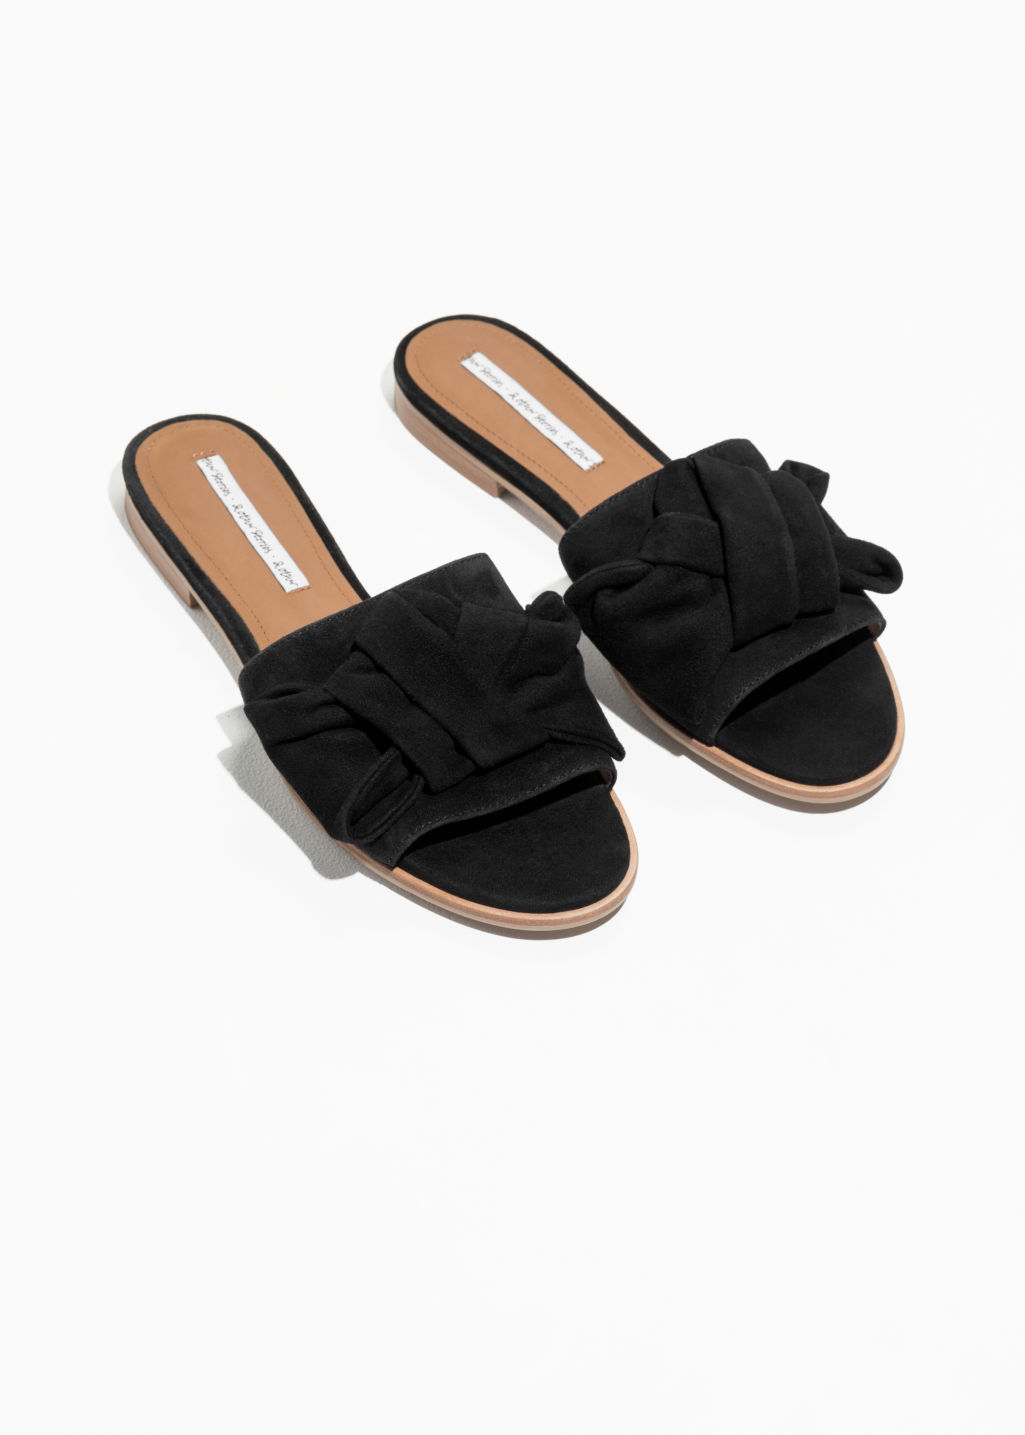 & OTHER STORIES Knotted Suede Slip Ons - Black glWVurXA